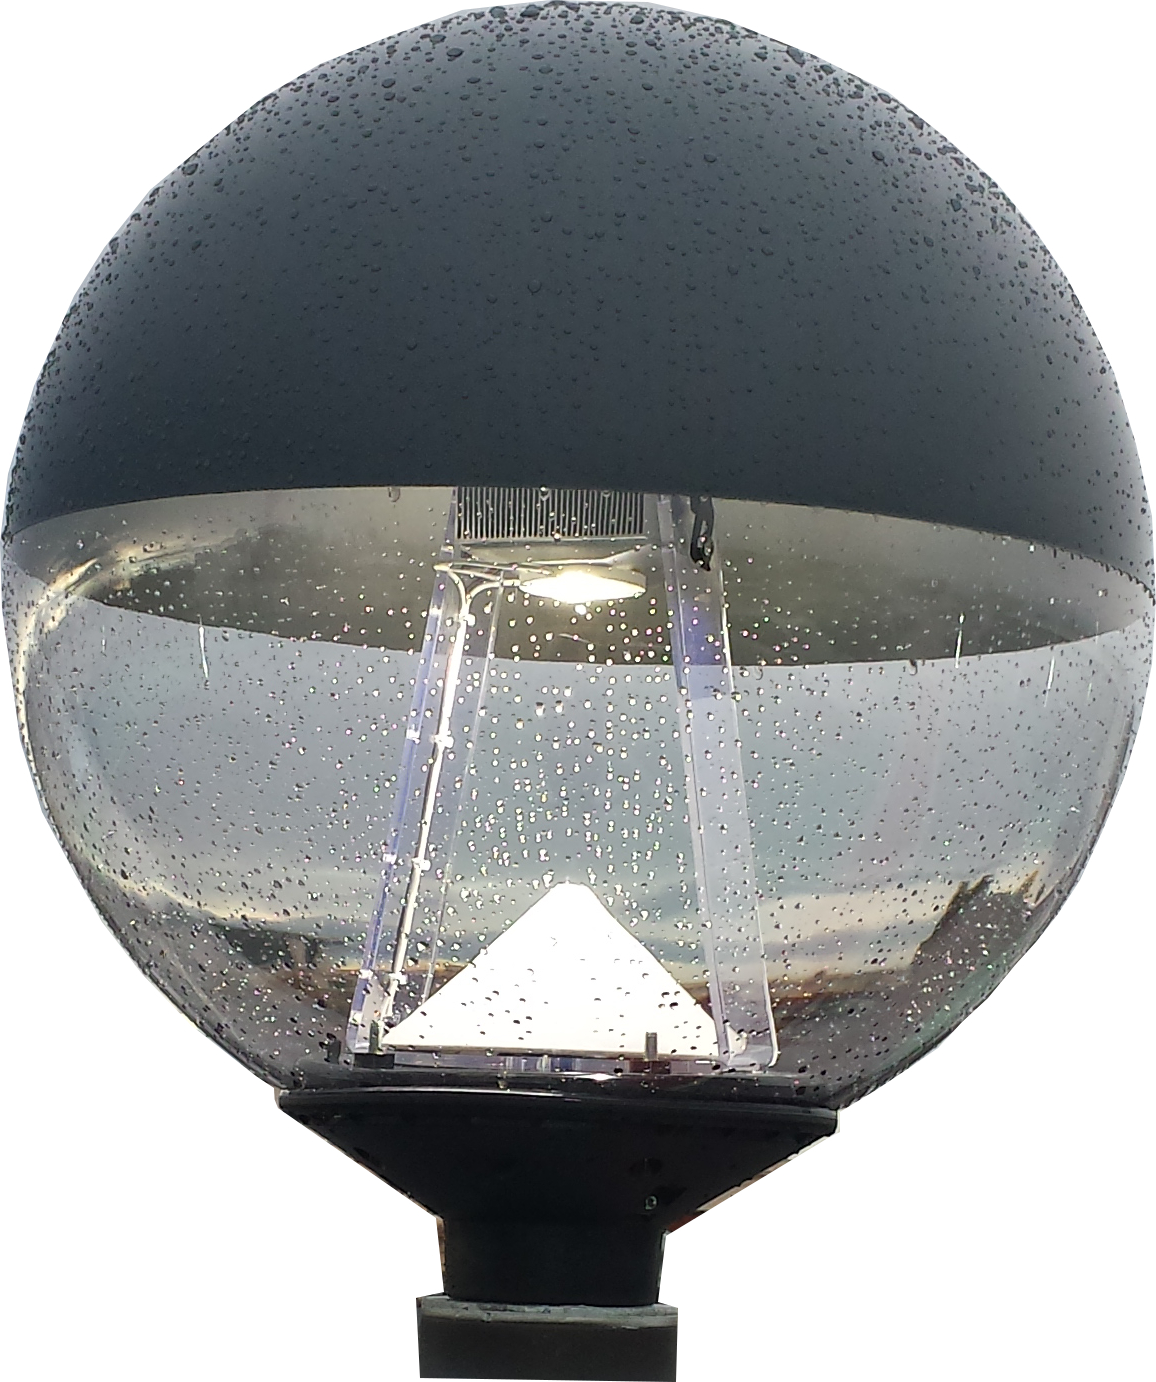 Marlow Led Globe Amenity Light Earlsmann